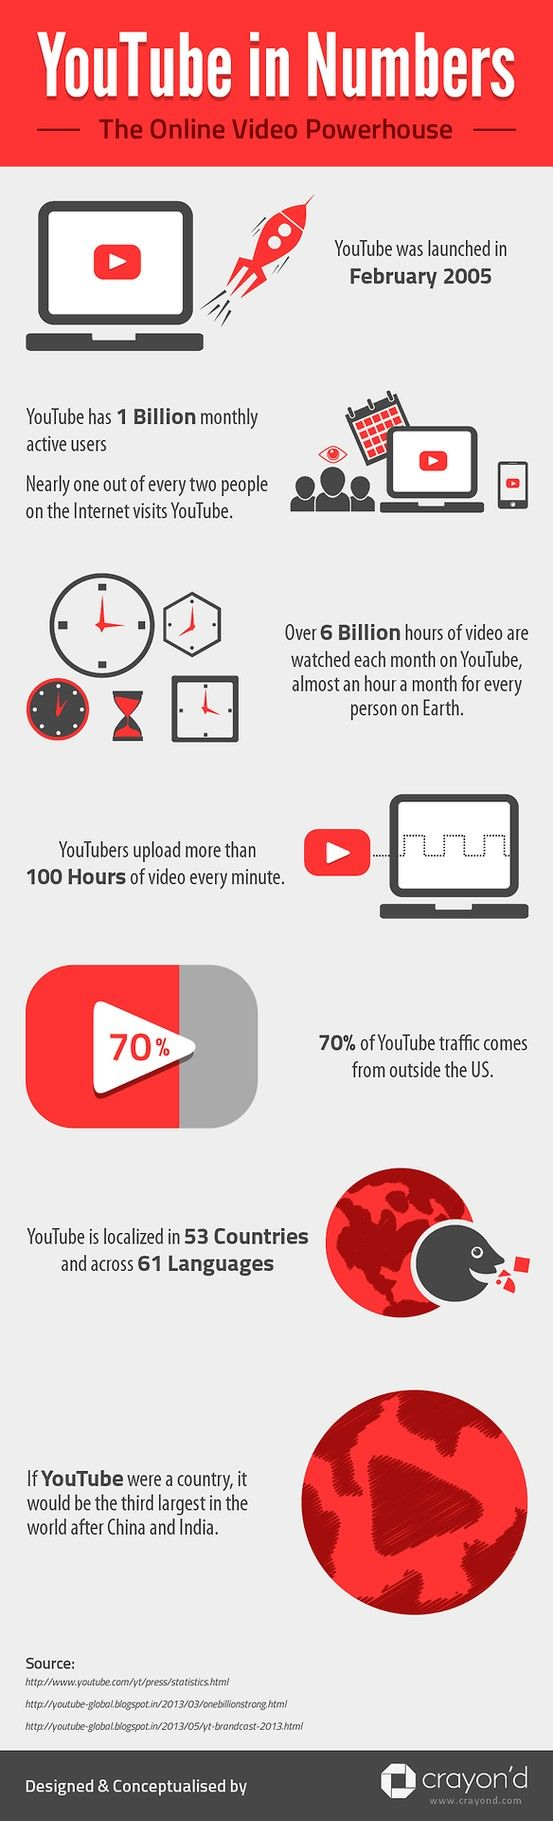 YouTube in Numbers - YouTube currently has 1 billion monthly active users watching 6 billion hours of video on the site every month. 100 hours of video is uploaded to the site every minute. Many more stats about the video giant have been presented here in the form of a creative infographics.